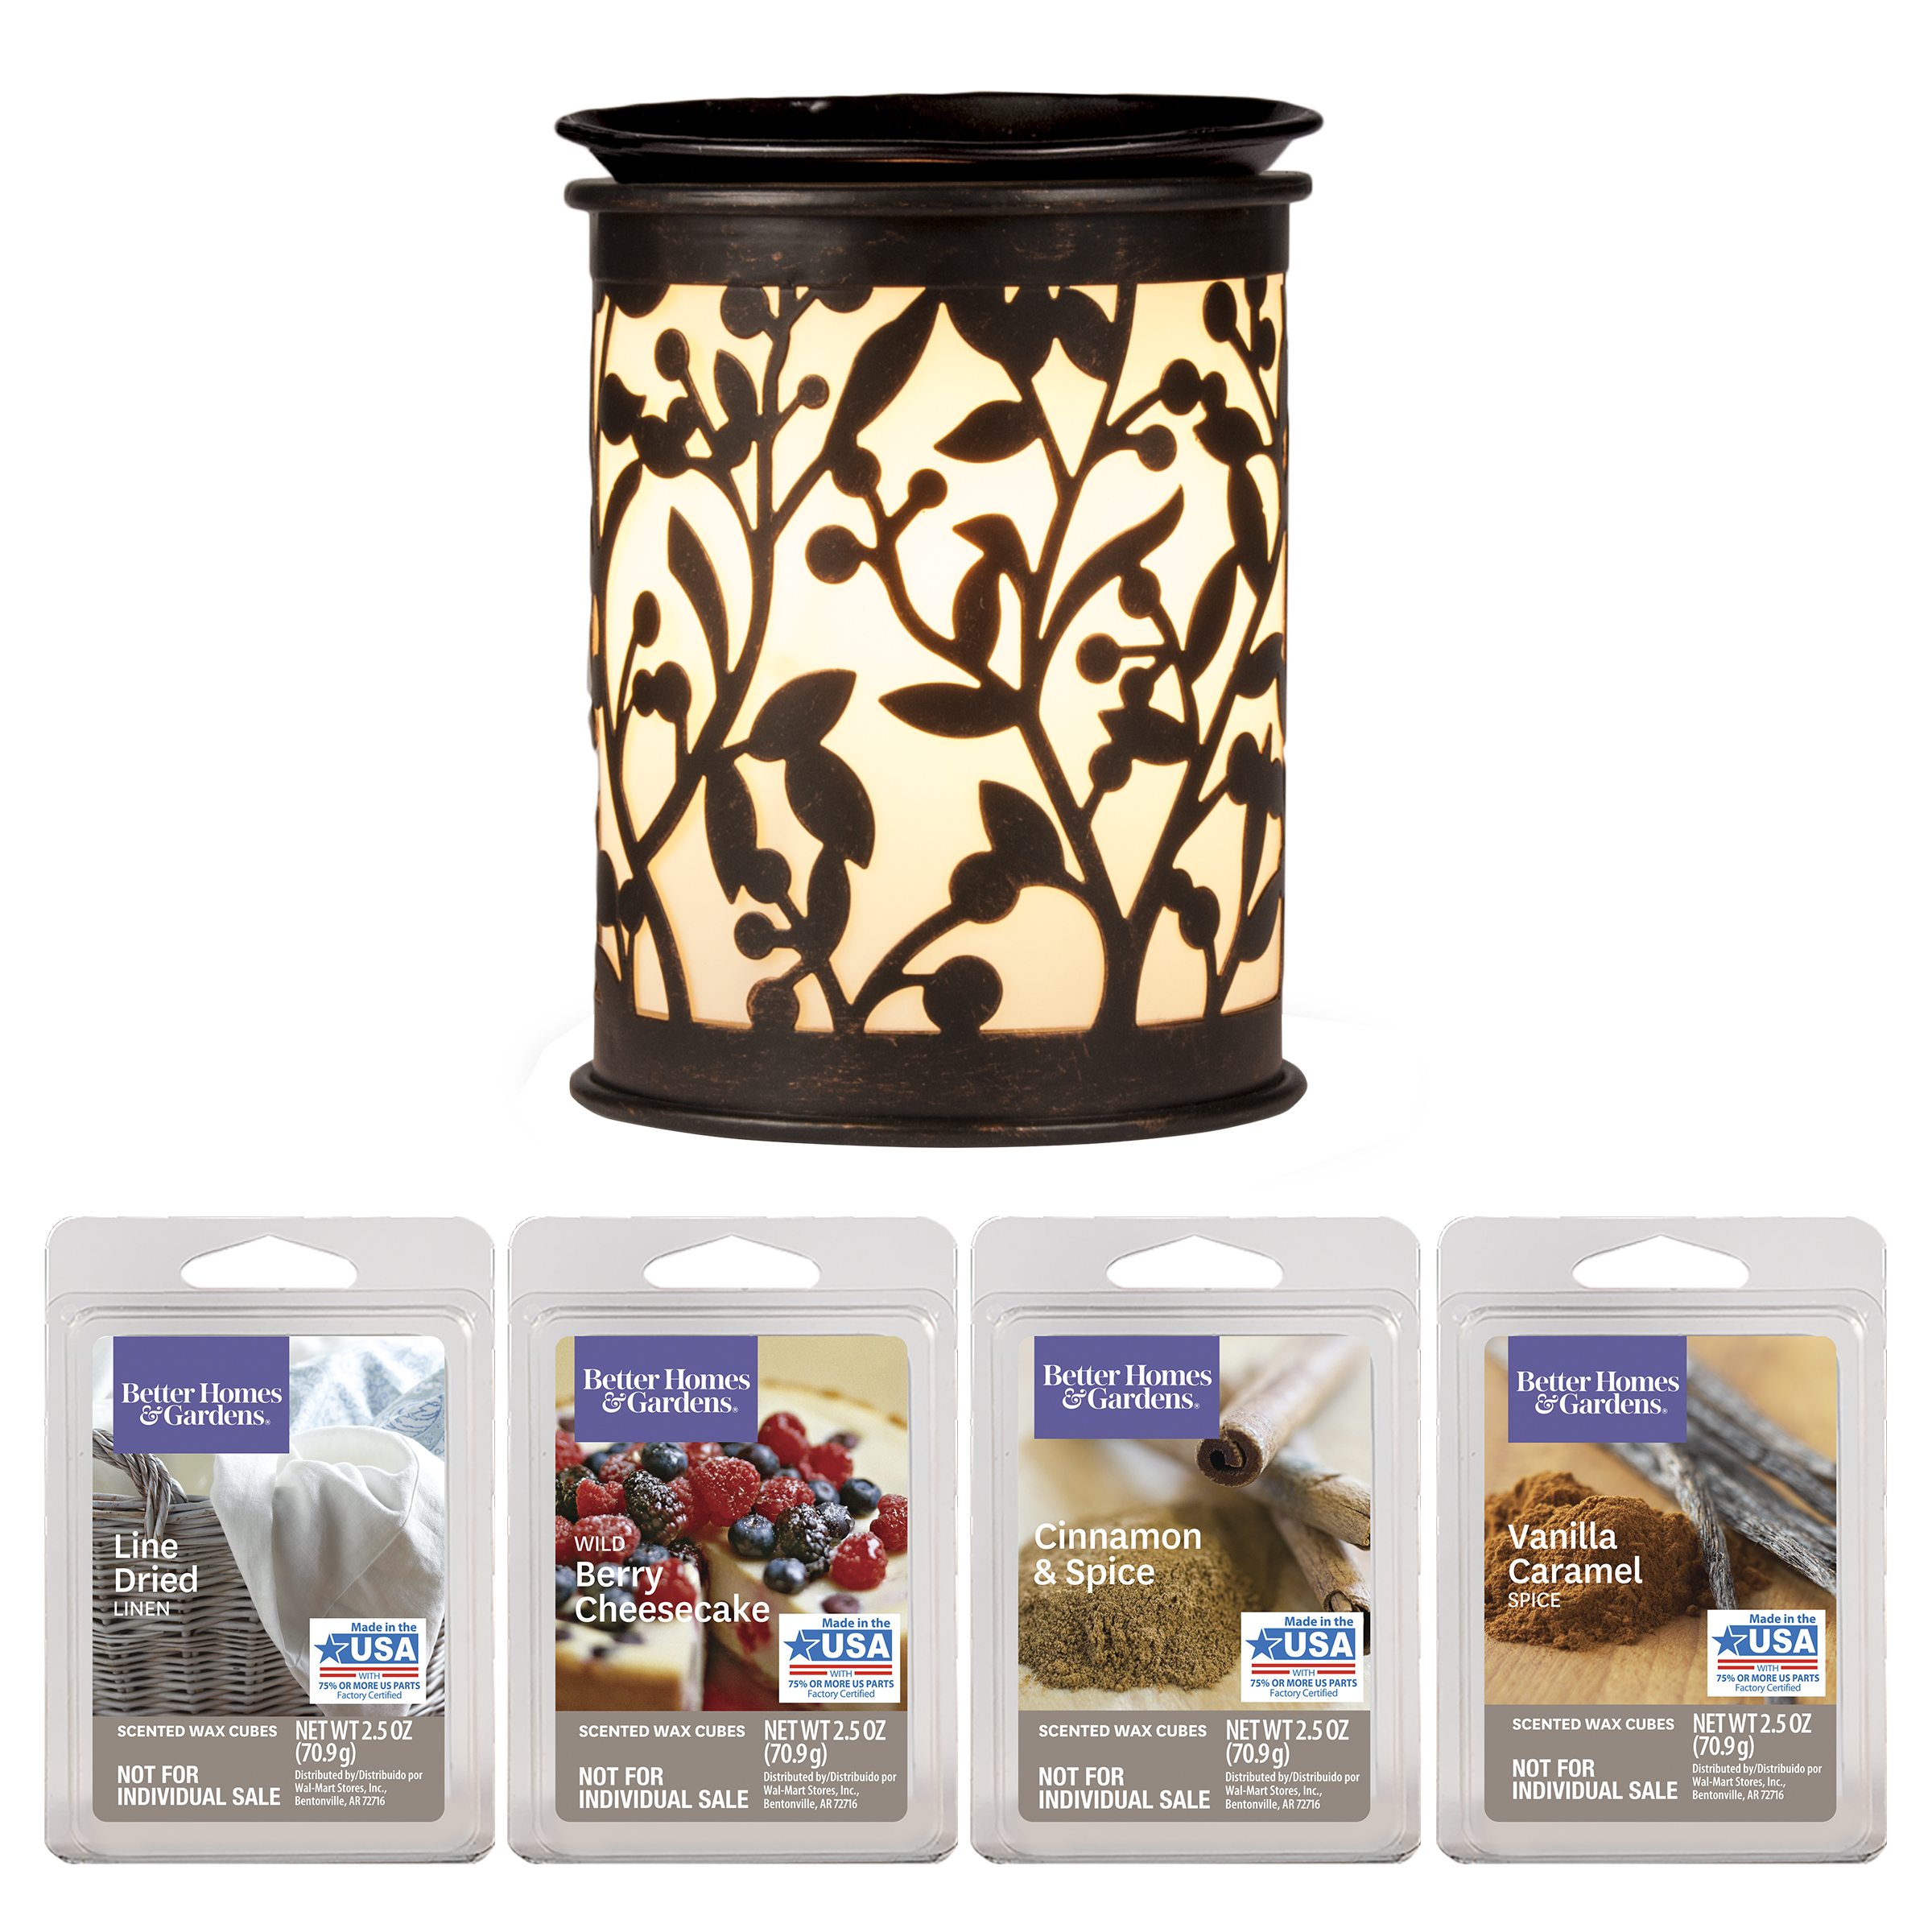 Better Homes & Gardens Botanical Glow Full-Size Wax Warmer Starter Set